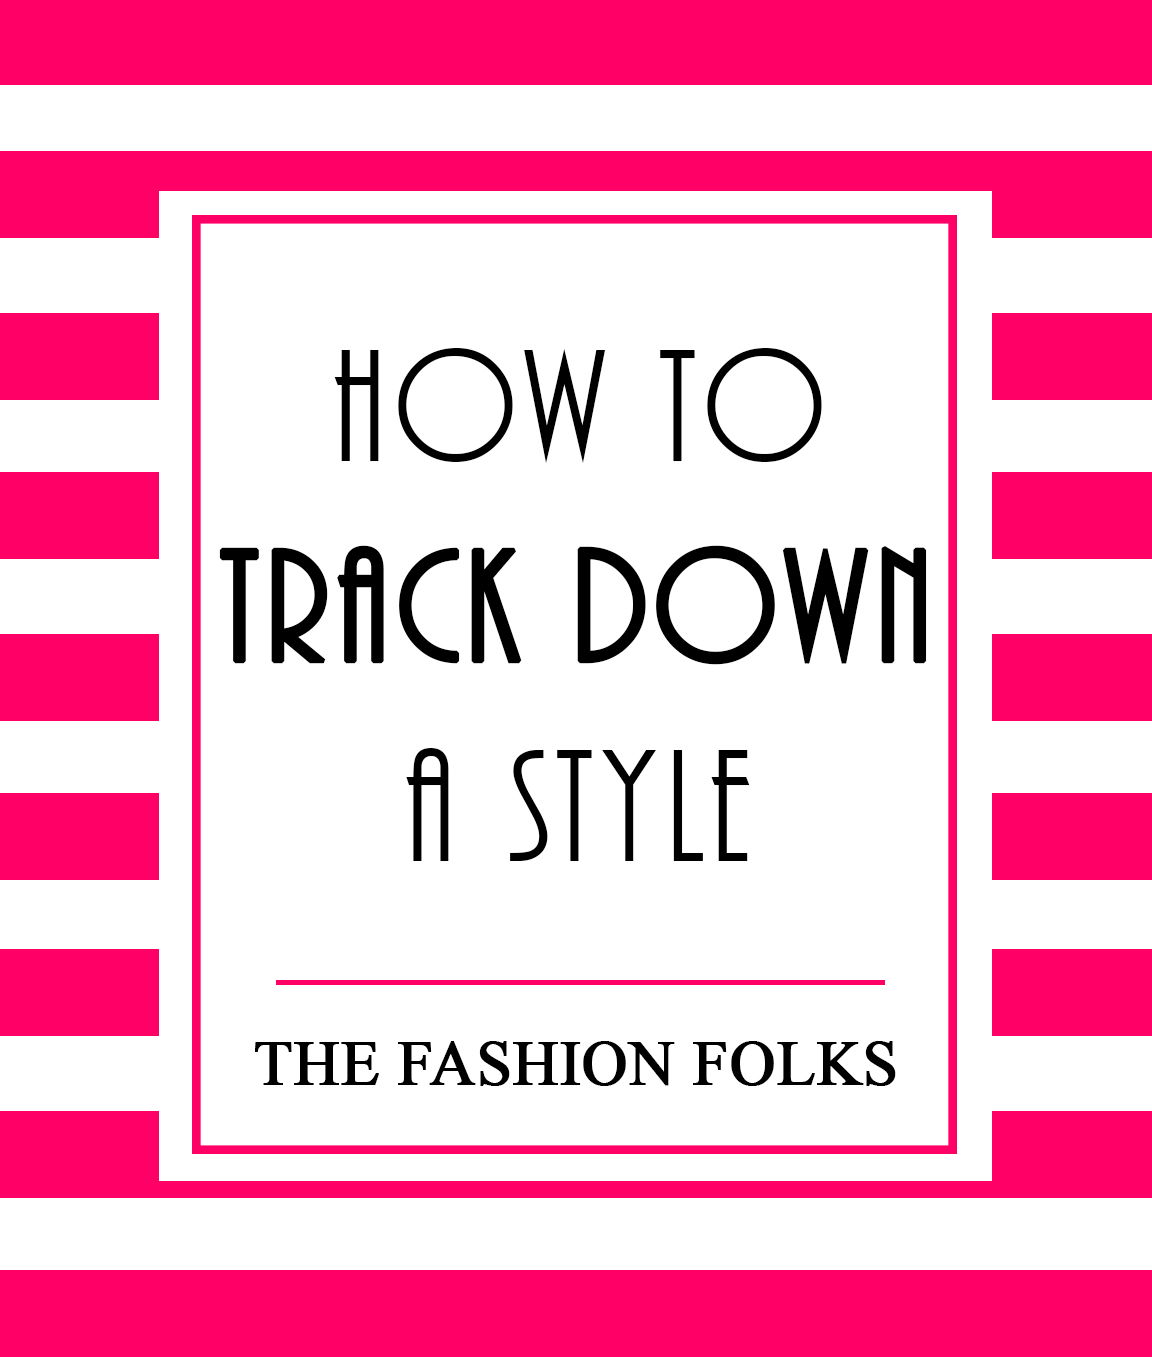 track down a style